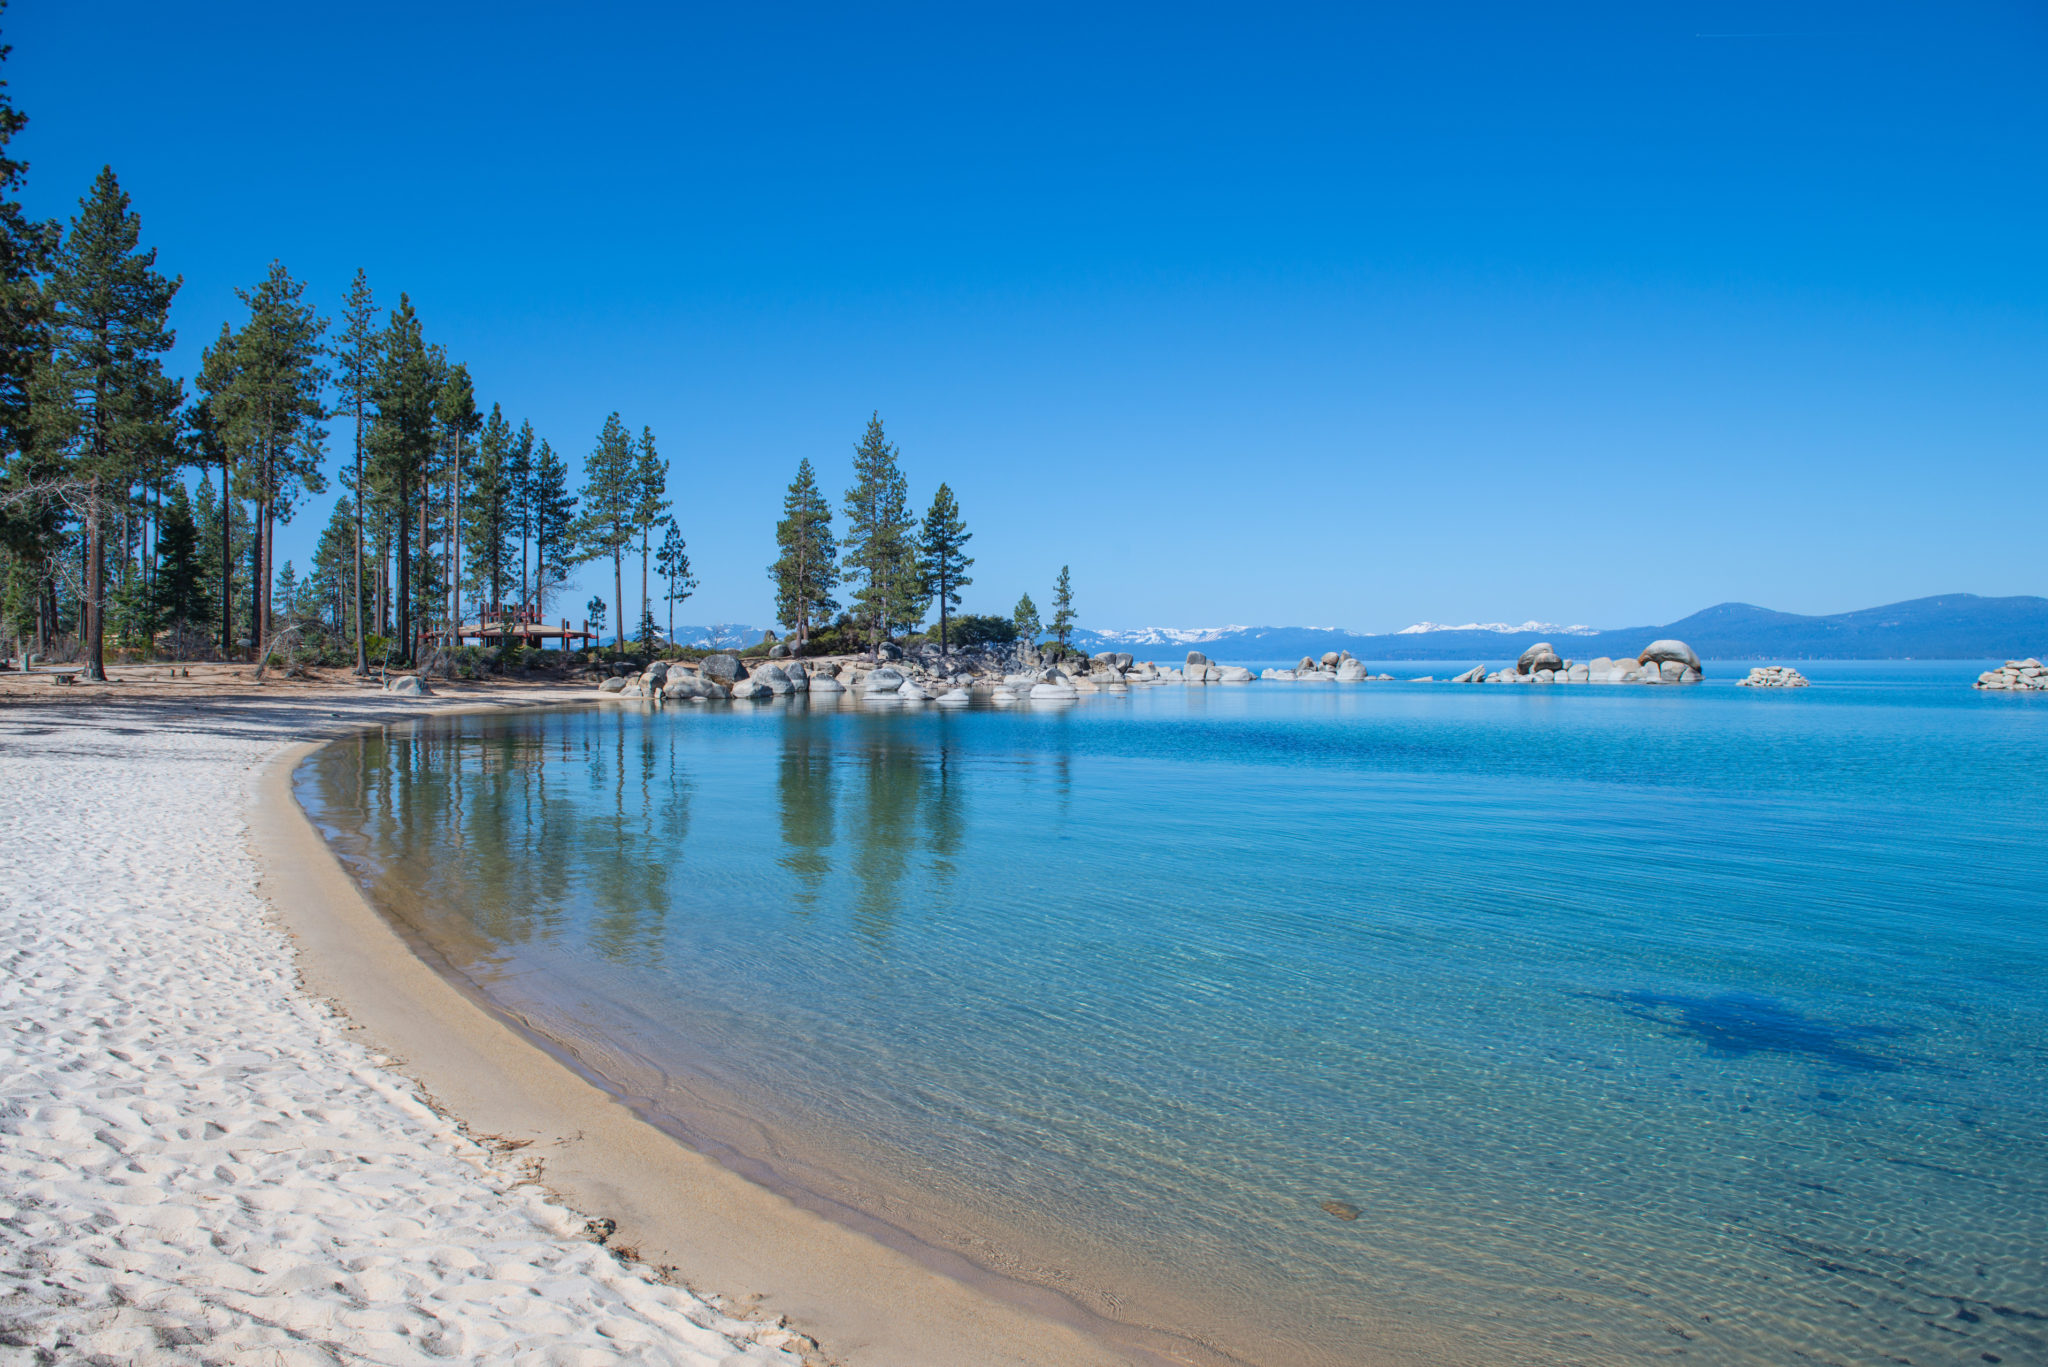 Top 10 Beaches in North Lake Tahoe